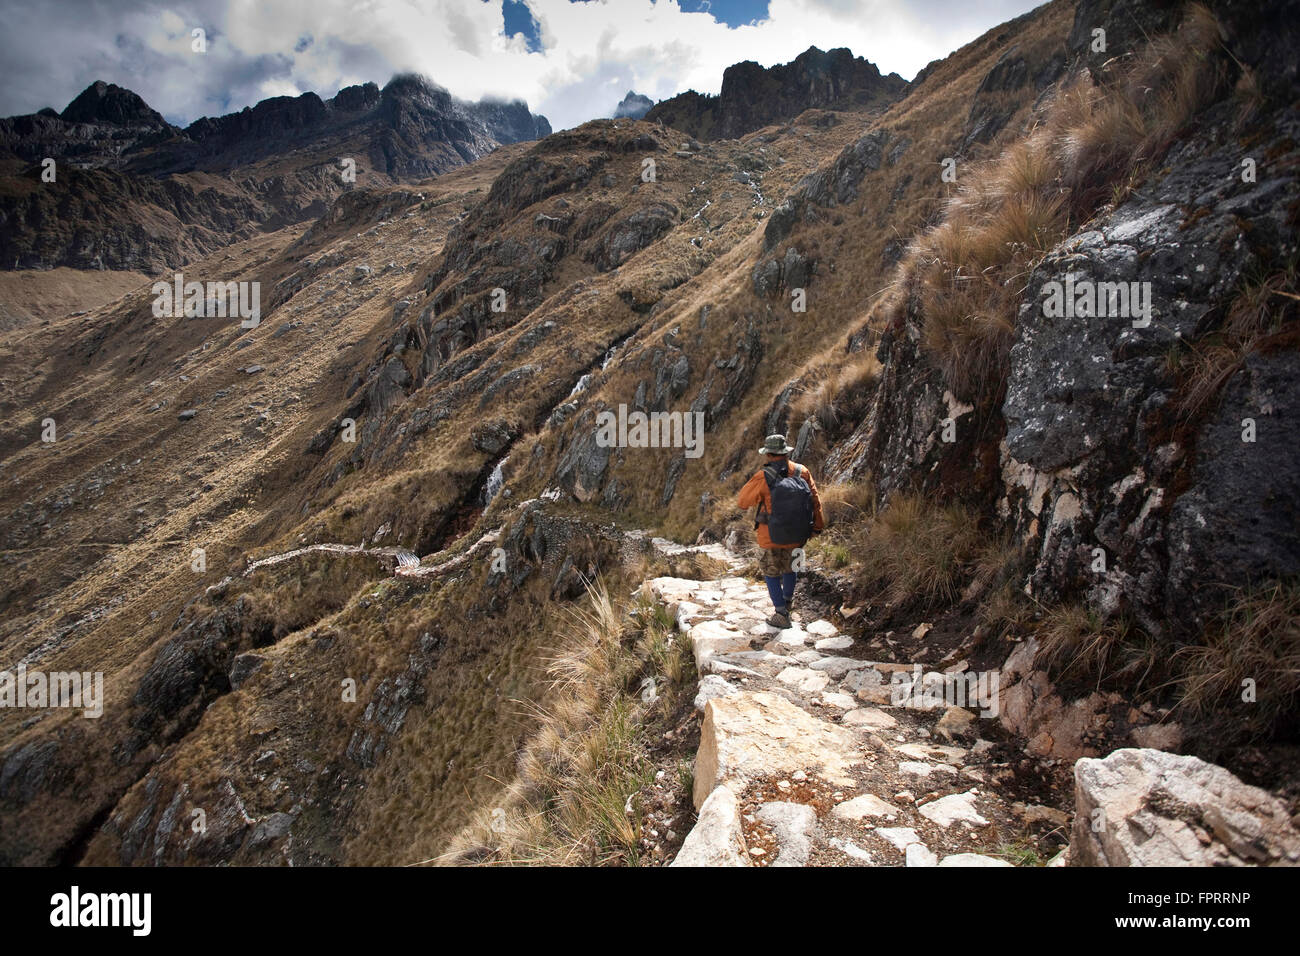 Geography/travel, Americas, South America, Peru, Andes, Inca road to Choquequirao, hiker on the road Stock Photo